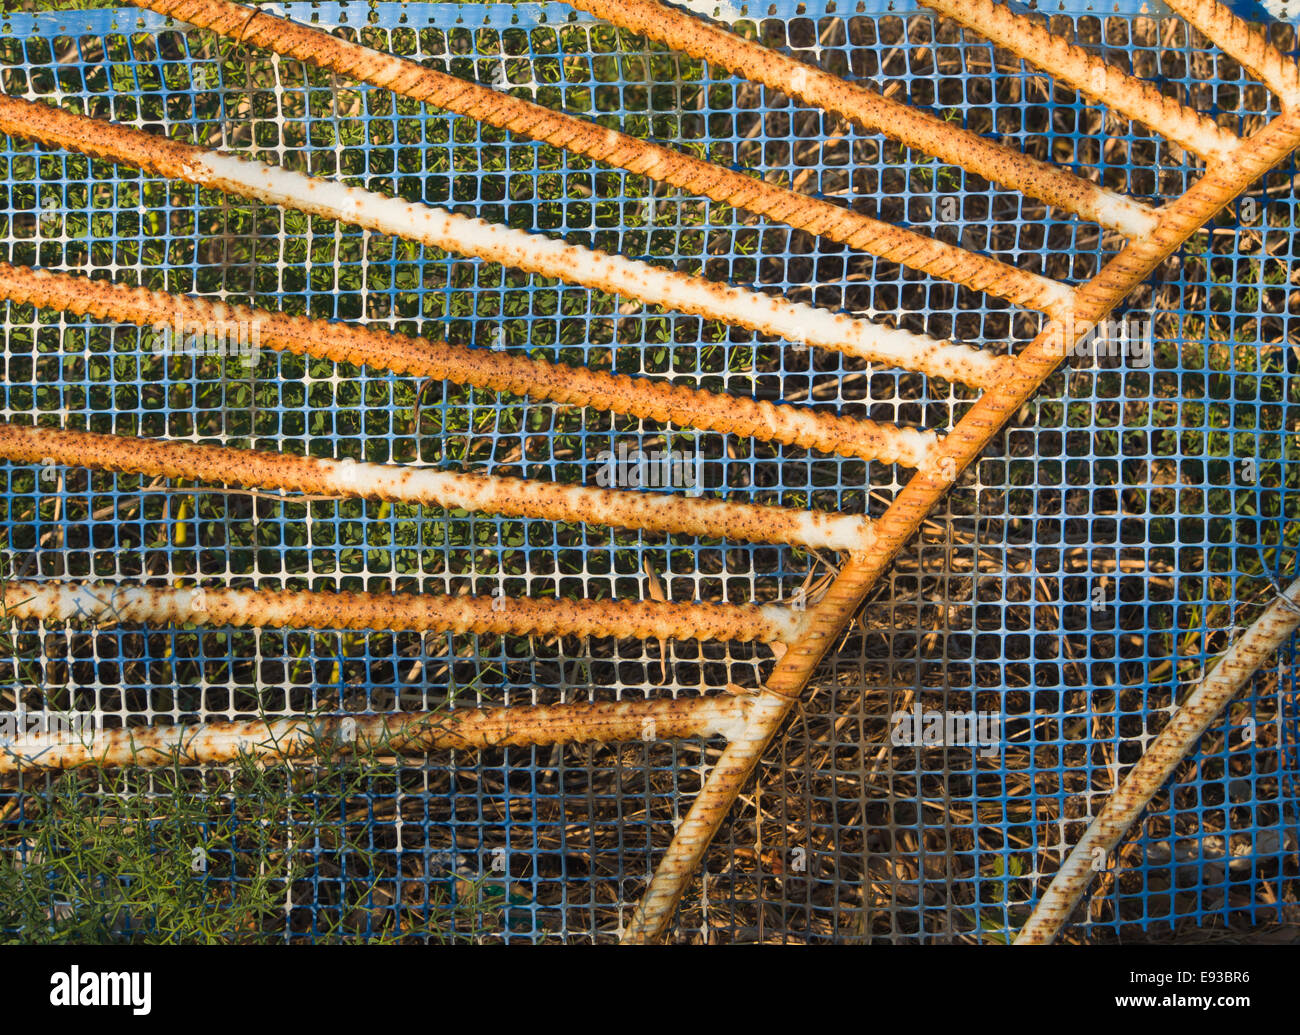 Colorful details of rusty old gate with blue plastic mesh, Samos Greece - Stock Image